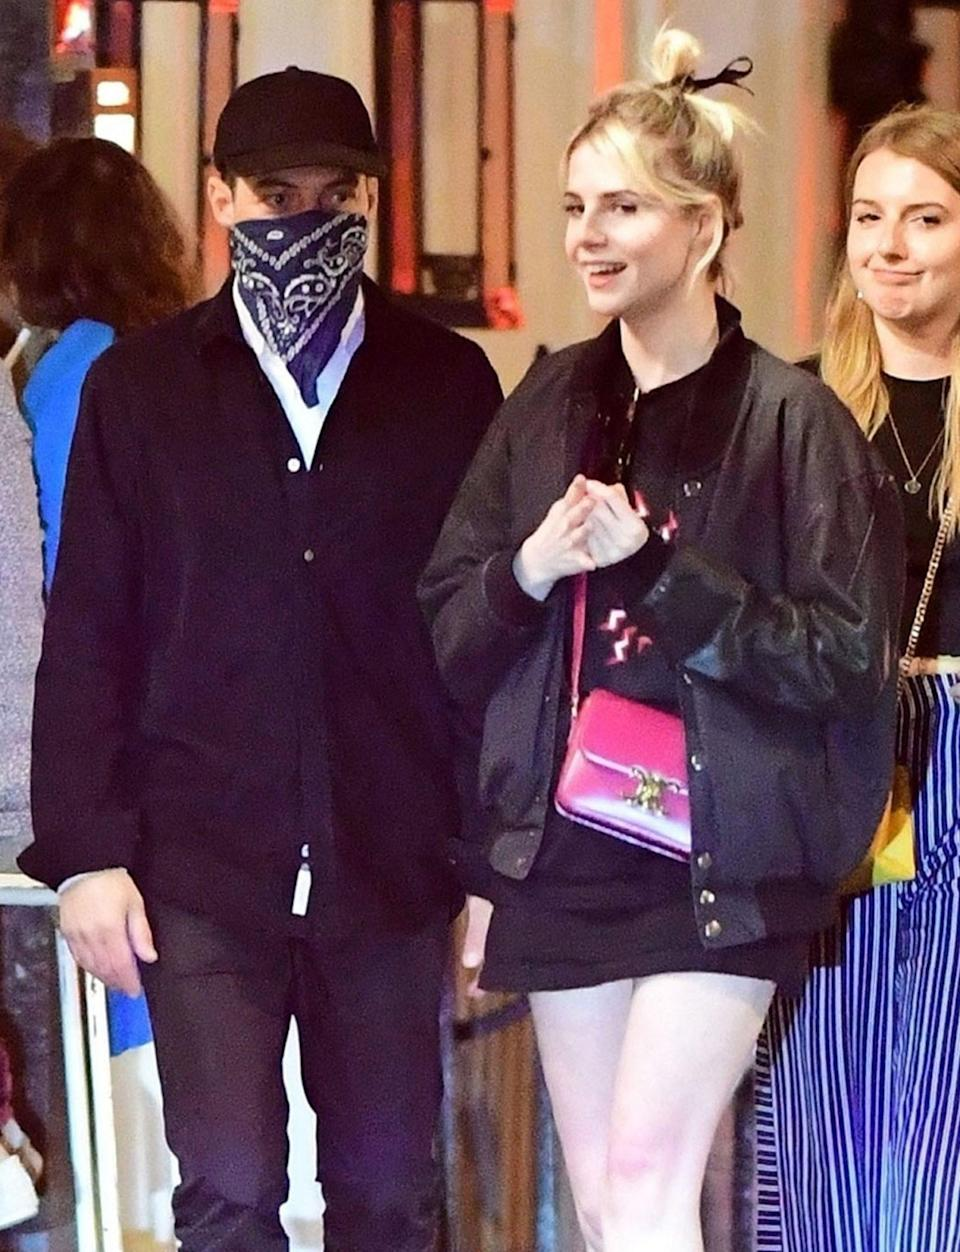 <p>Rami Malek and girlfriend Lucy Boynton step out for a bite to eat in London's Soho neighborhood on Thursday. </p>